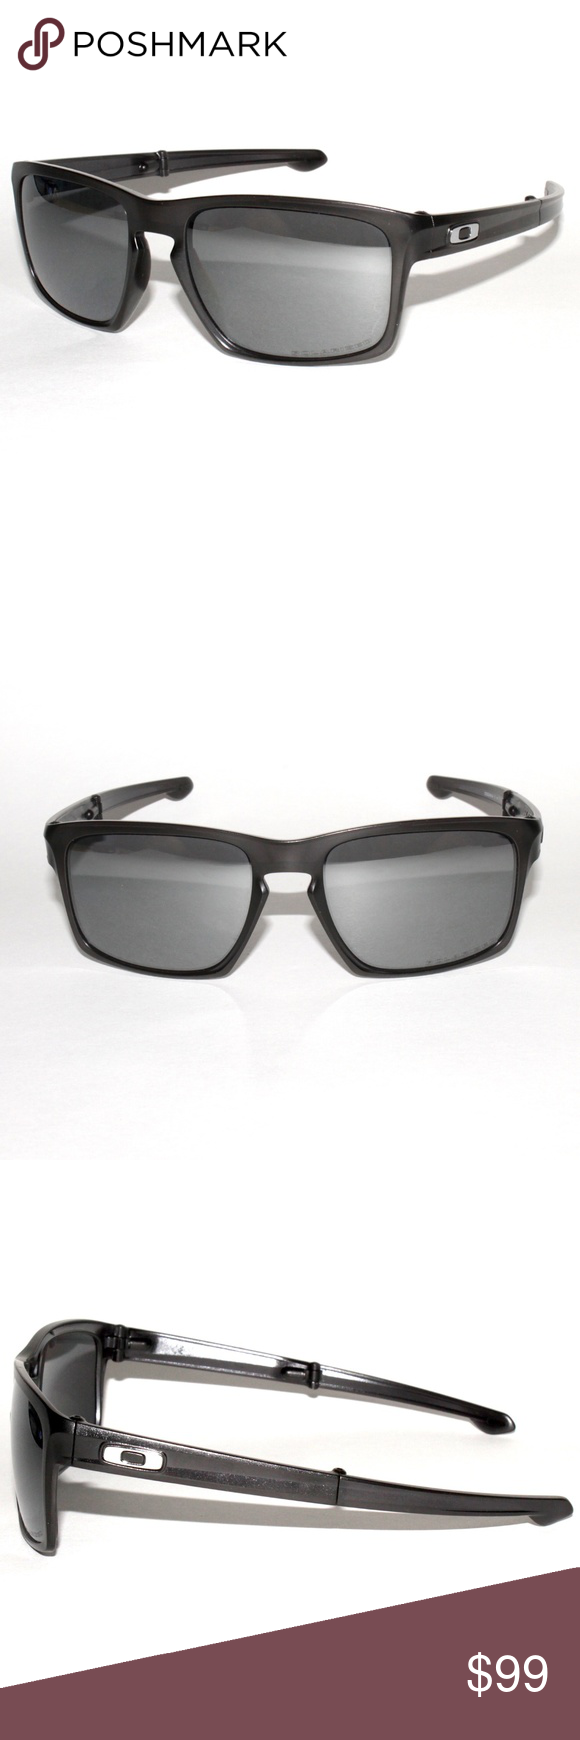 f049b09ffd2 Oakley folding sunglasses sliver oo brand new authentic png 580x1740  Folding sunglasses oakley